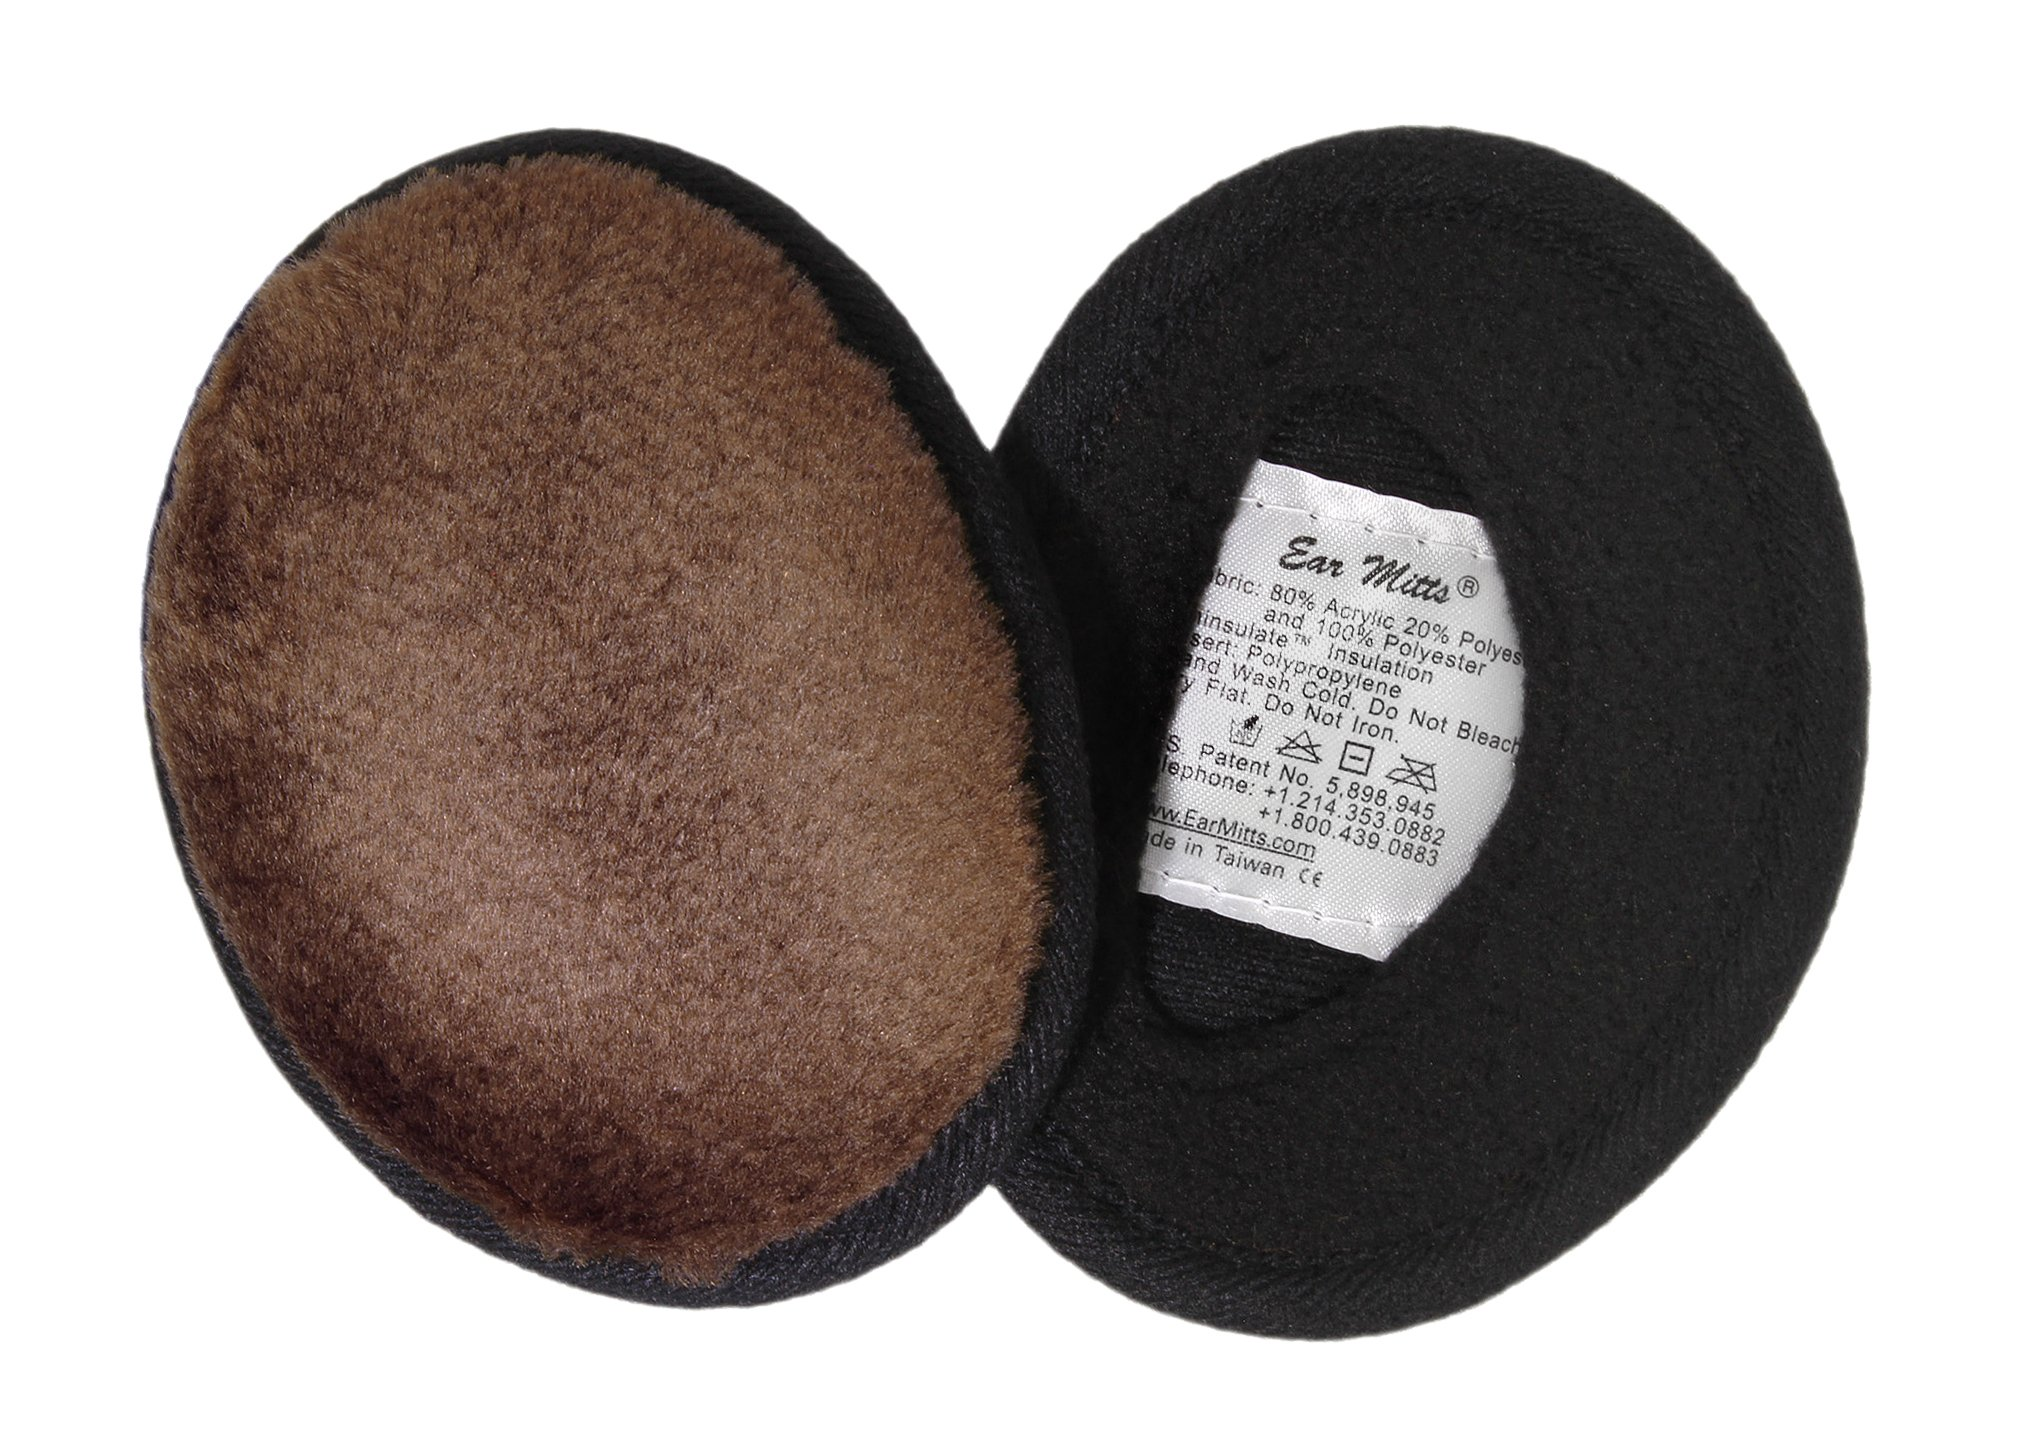 Ear Mitts Bandless Ear Muffs, Brown Mink Faux Fur Ear Warmers, Regular by Ear Mitts